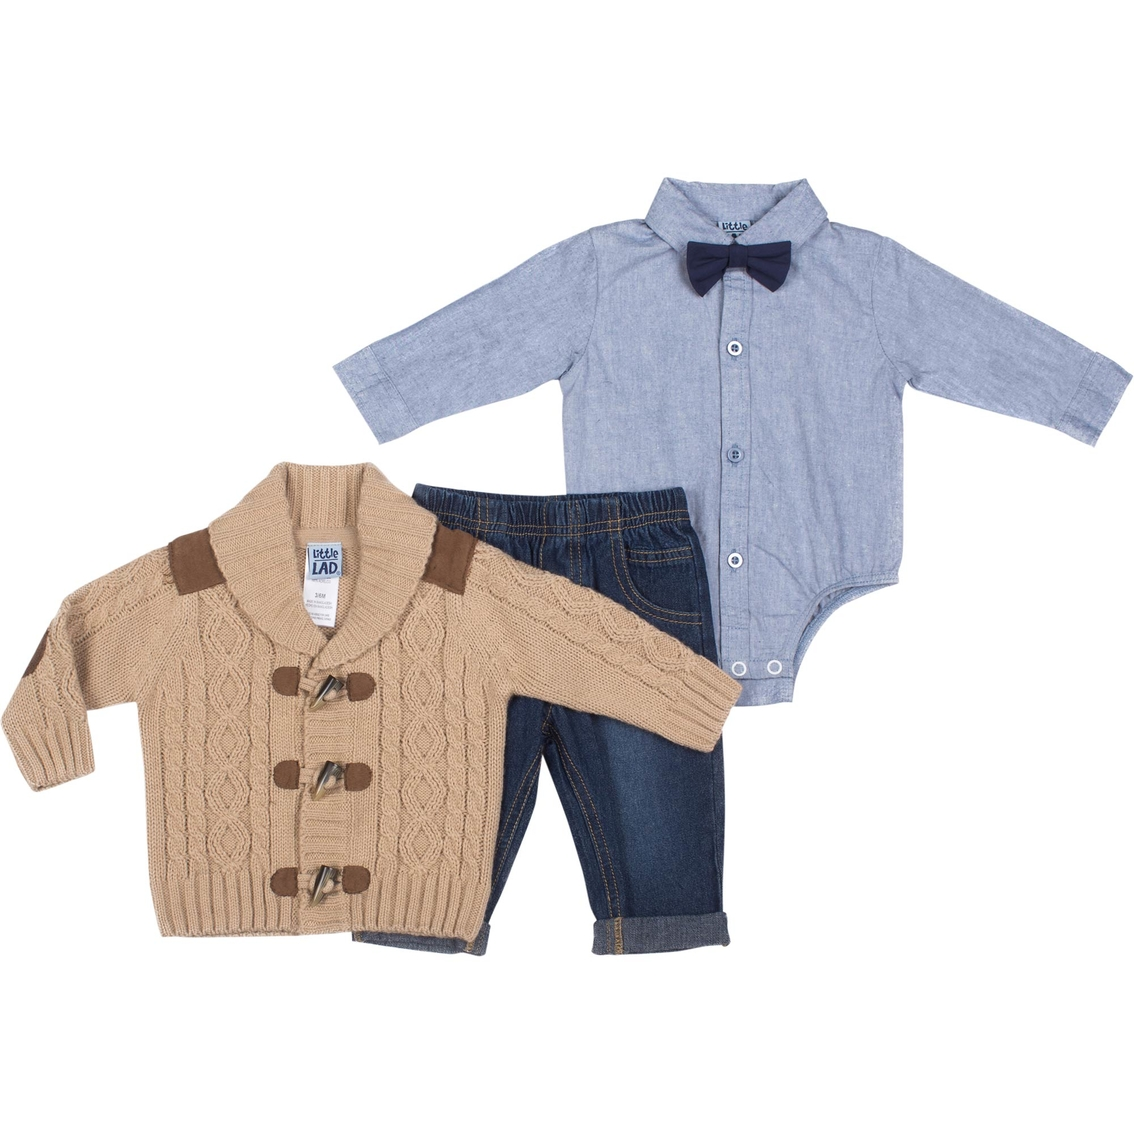 1cd50cf83 Little Lad Infant Boys 3 Pc. Cable Knit Sweater Cardigan Set | Baby ...